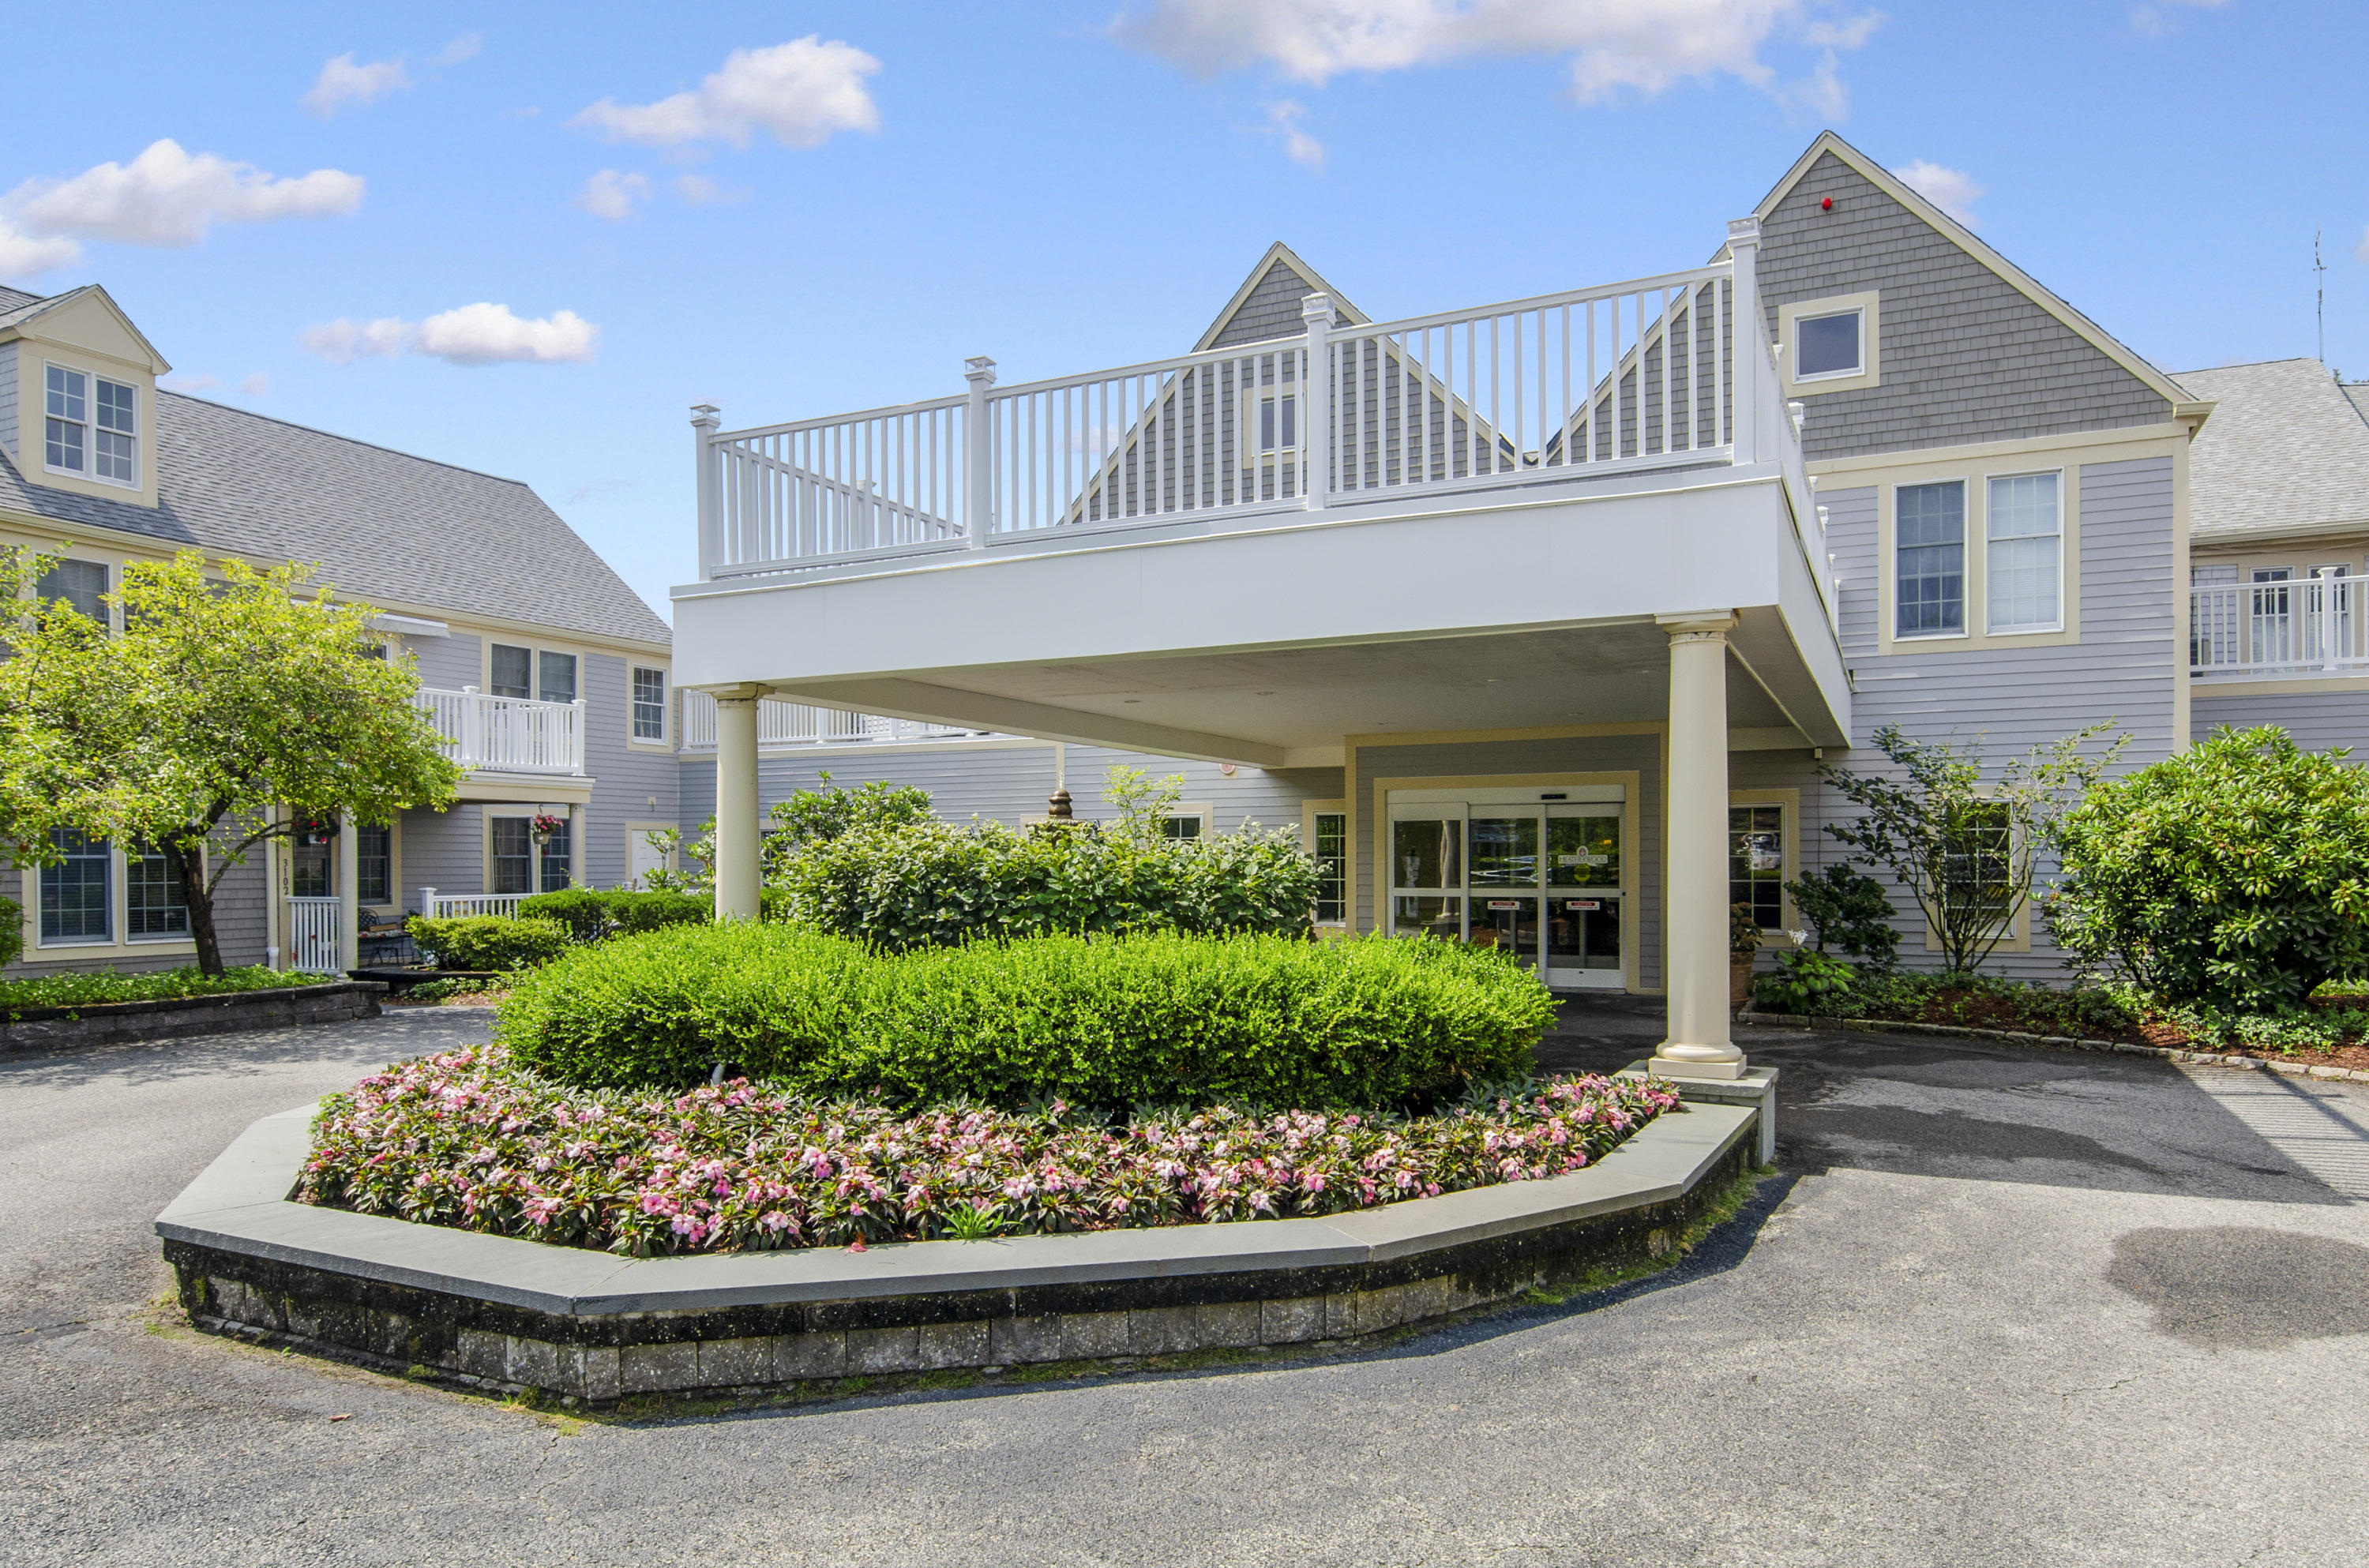 3102 Heatherwood Yarmouth Port MA, 02675 details